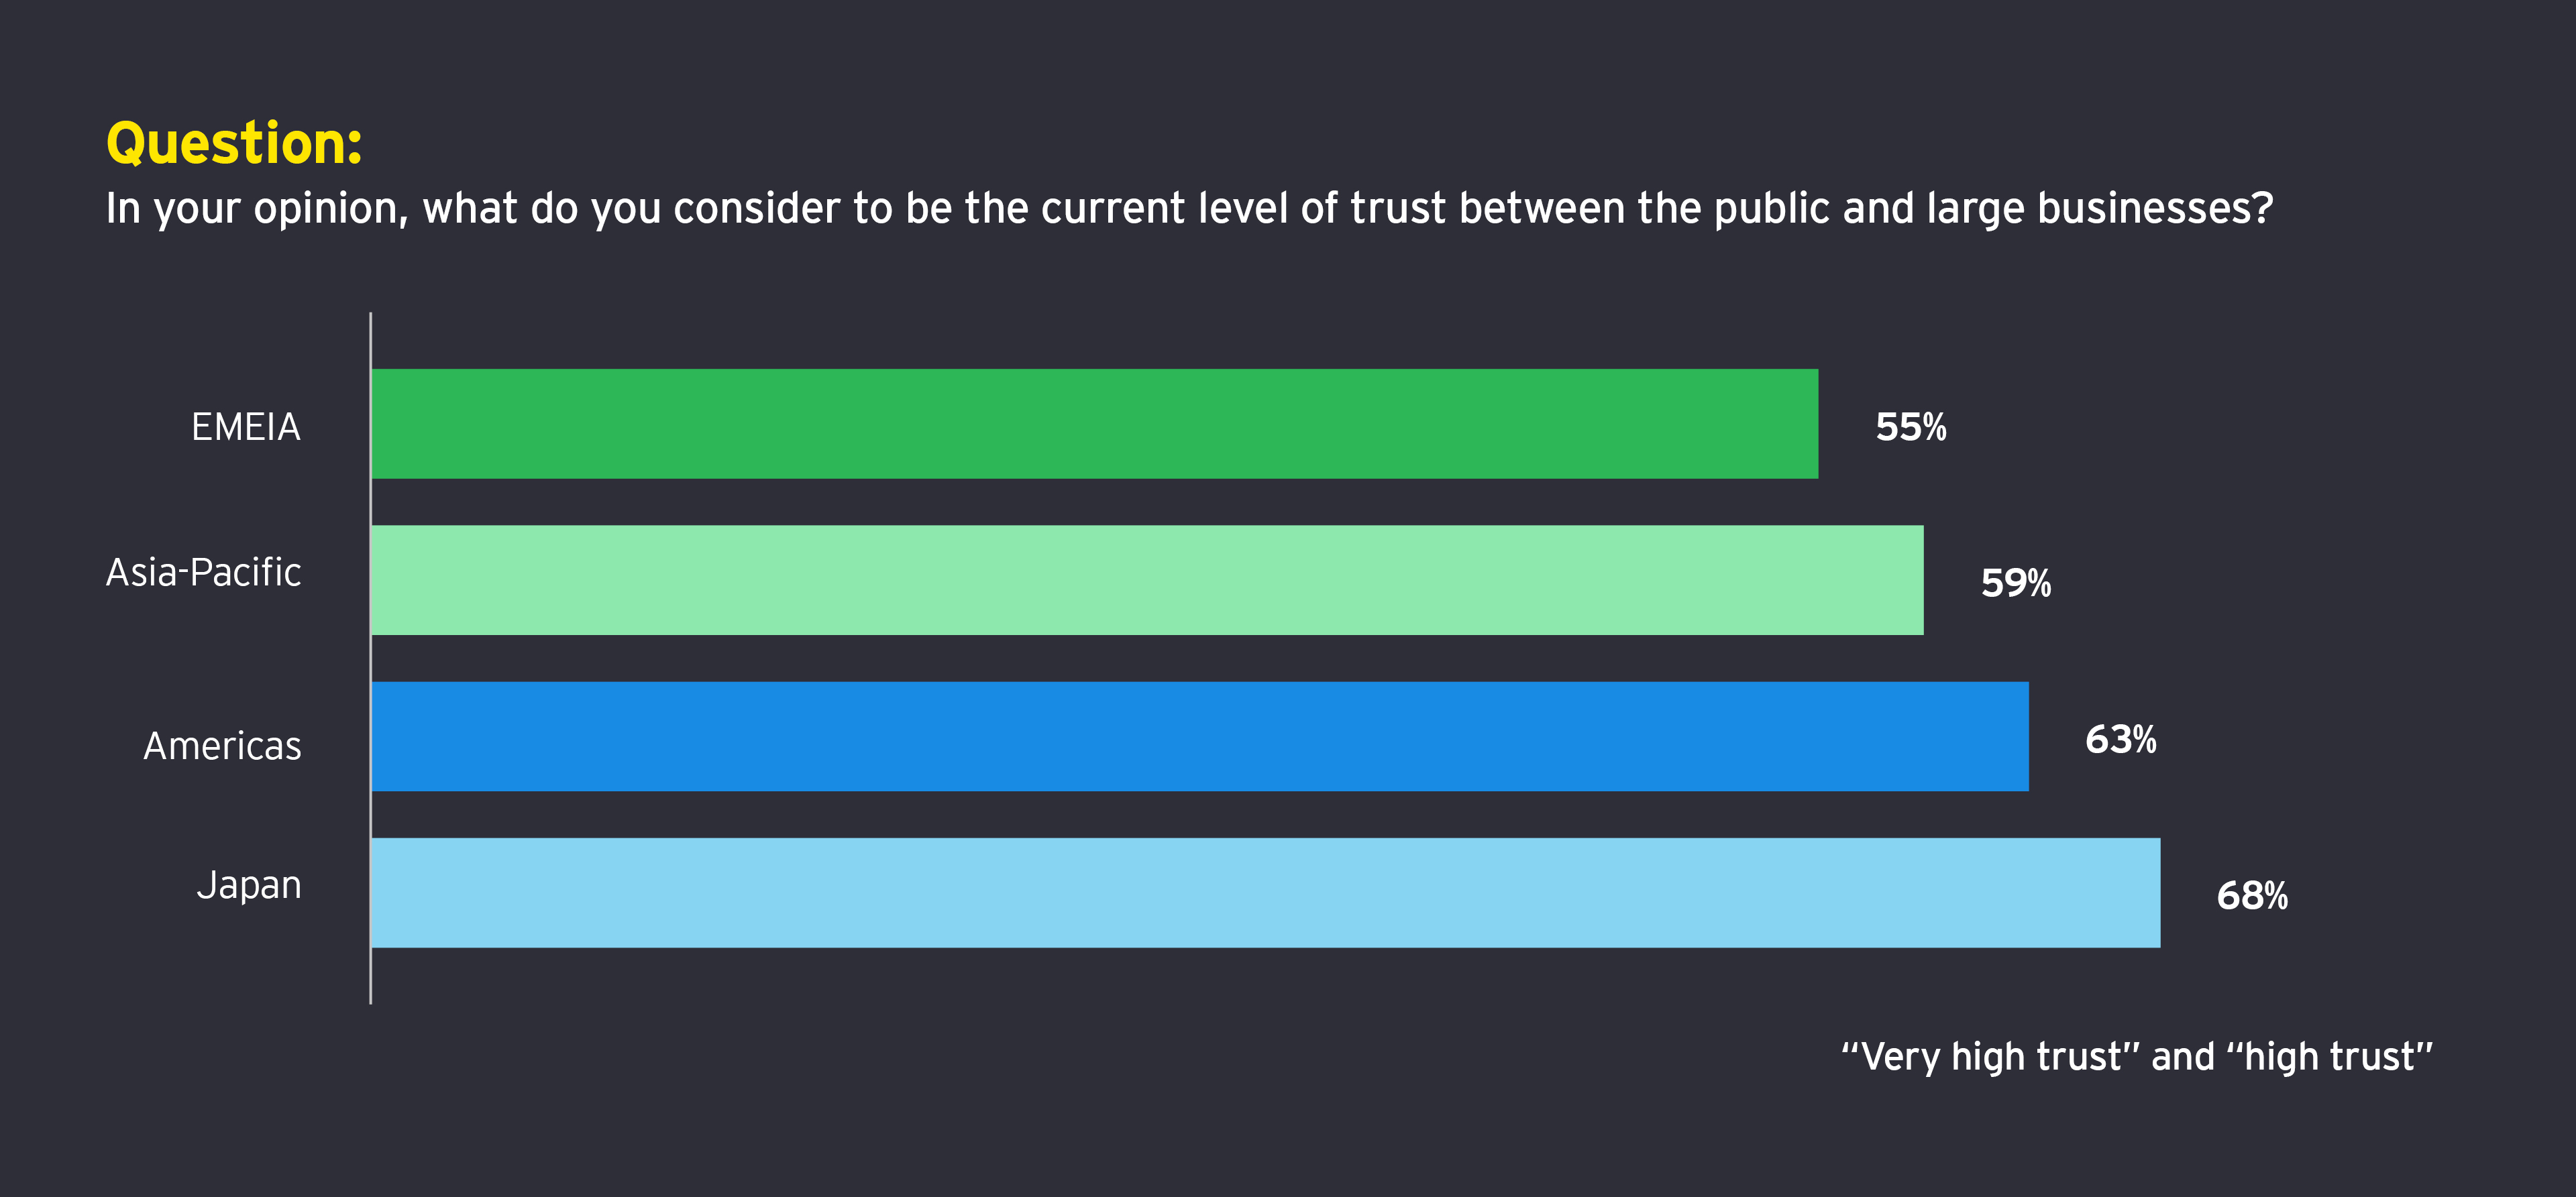 Question: In your opinion, what do you consider to be the current level of trust between the public and large businesses?